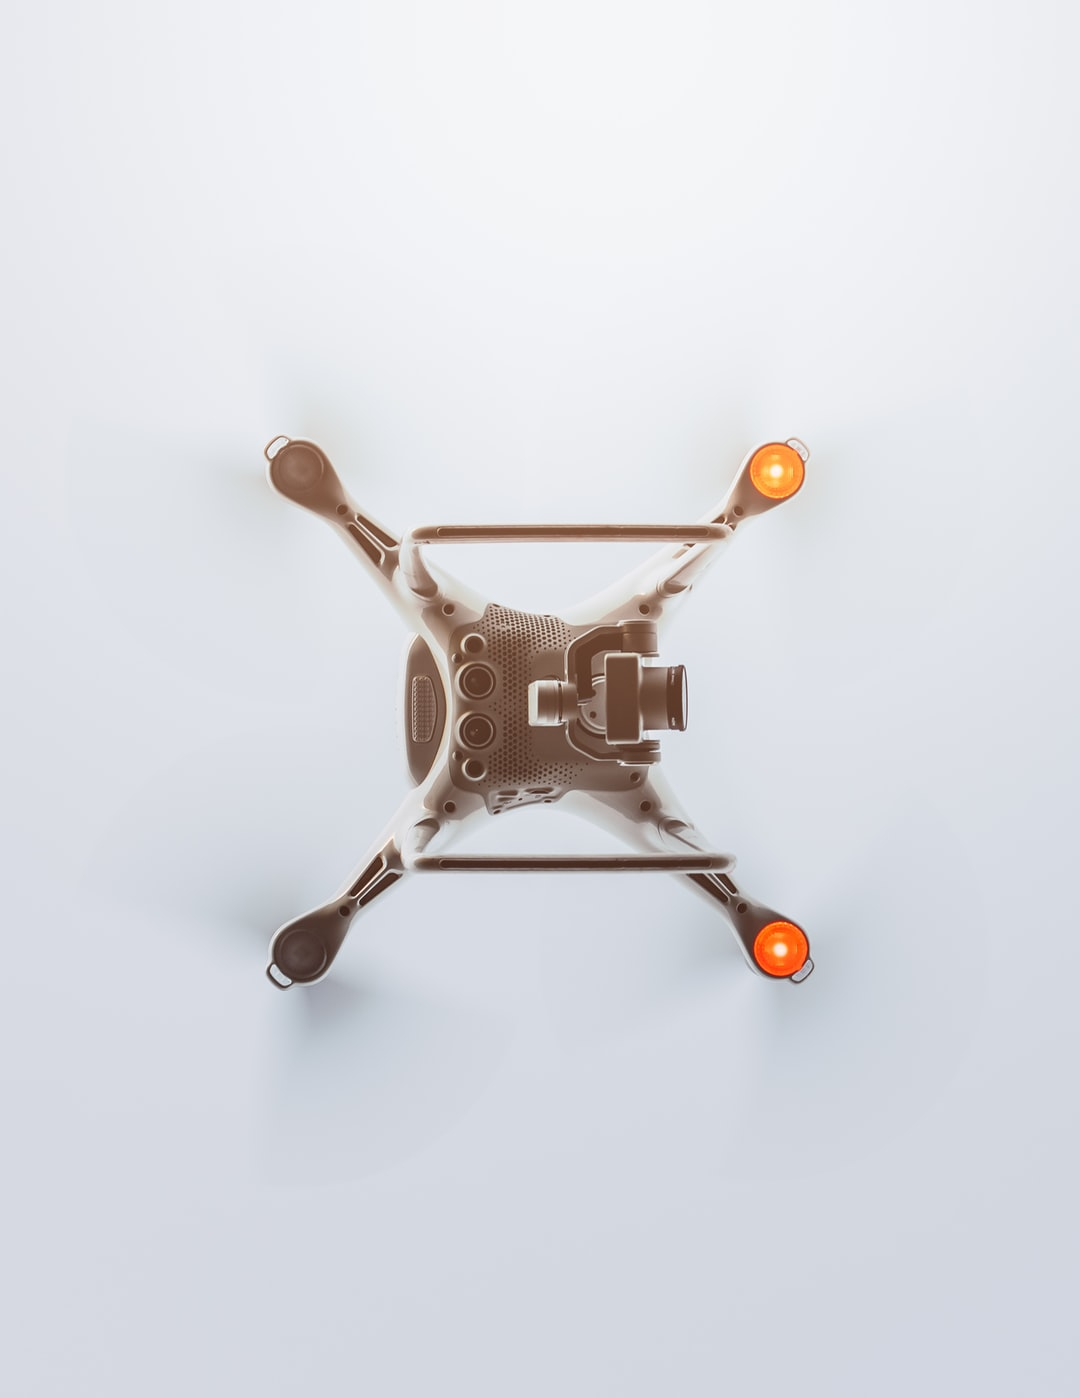 Photography drone on white